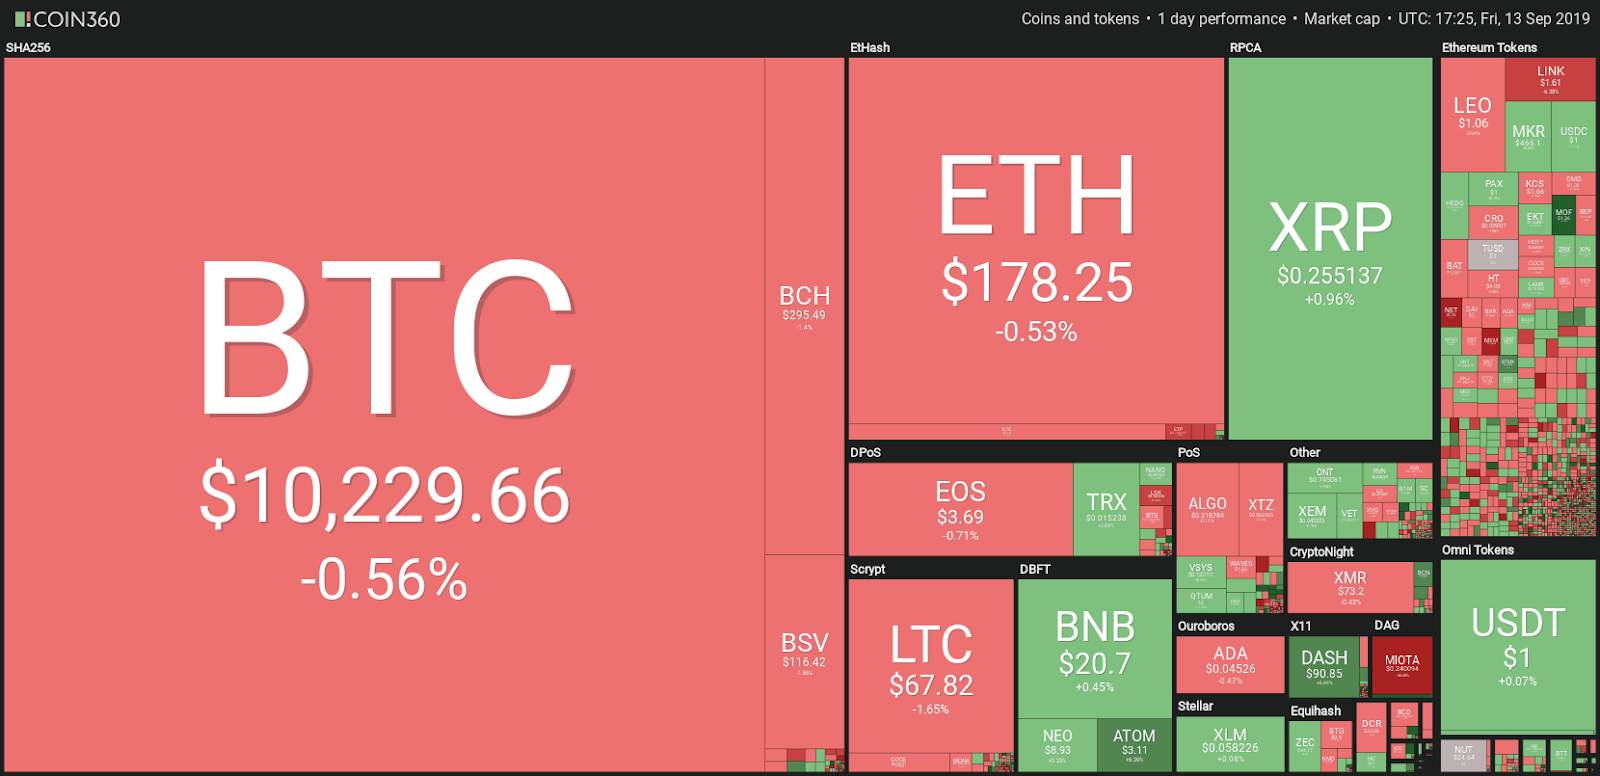 Market visualization | Source: Coin360